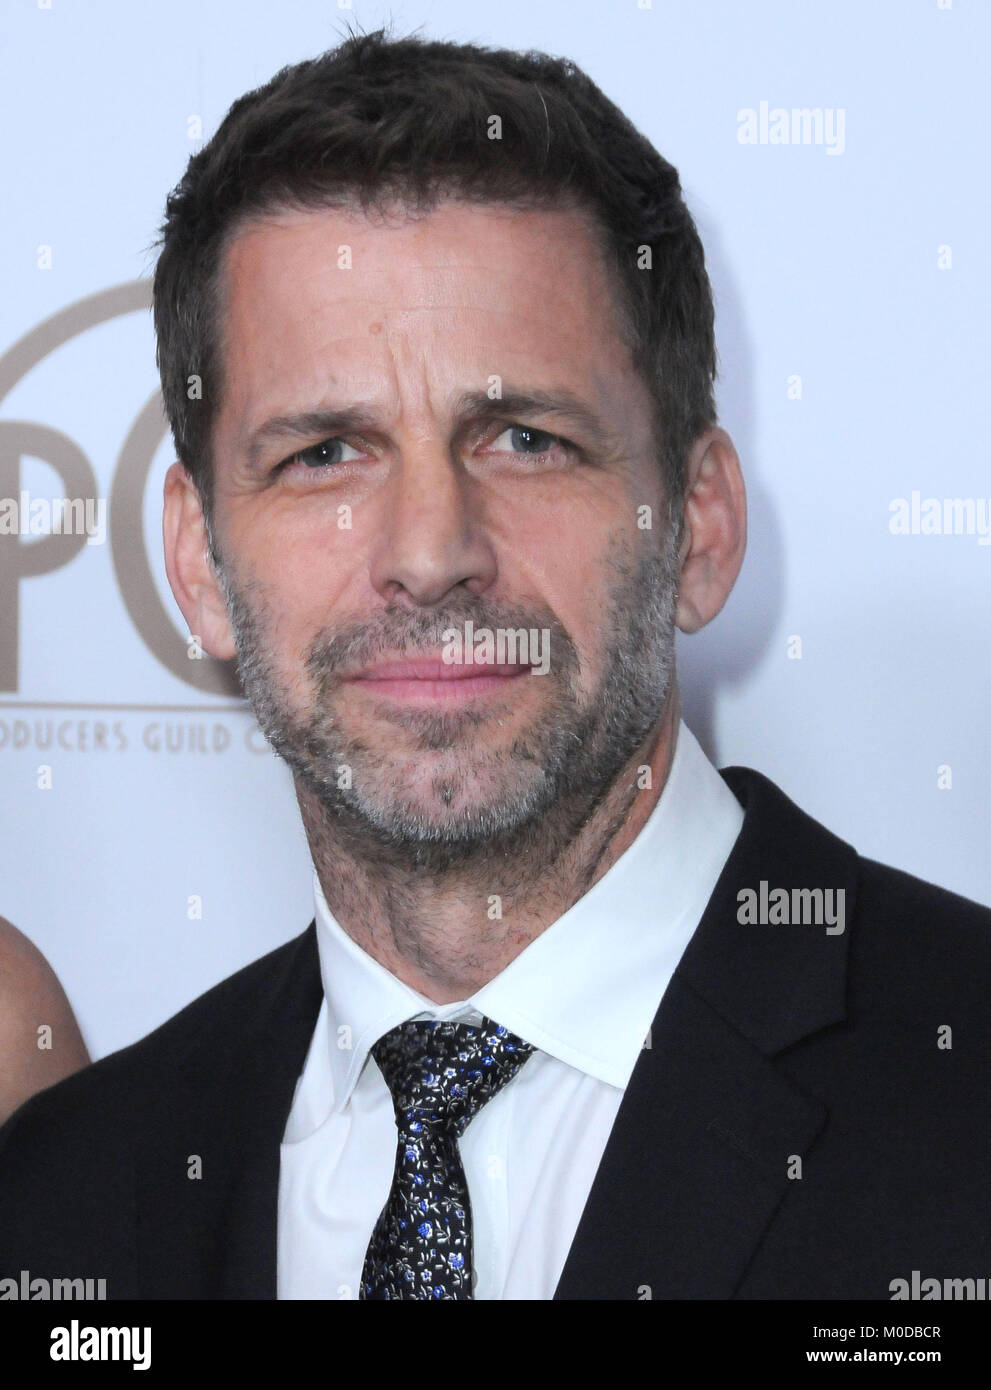 BEVERLY HILLS, CA - JANUARY 20: Director Zack Snyder attends the 2018 Annual Producers Guild Awards at the Beverly - Stock Image